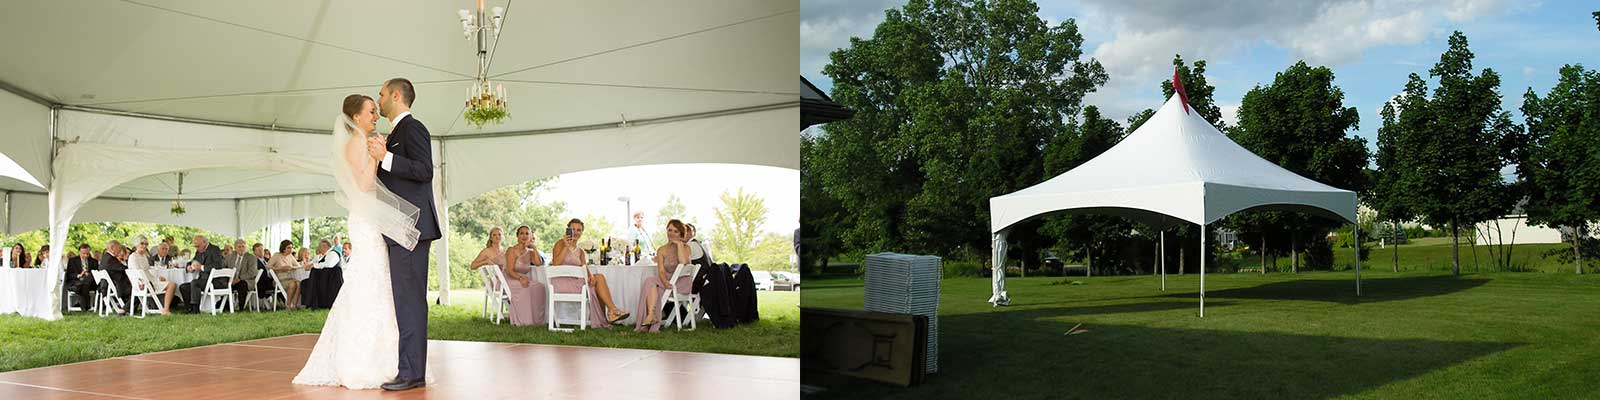 Wedding rentals in Livingston County and Washtenaw County